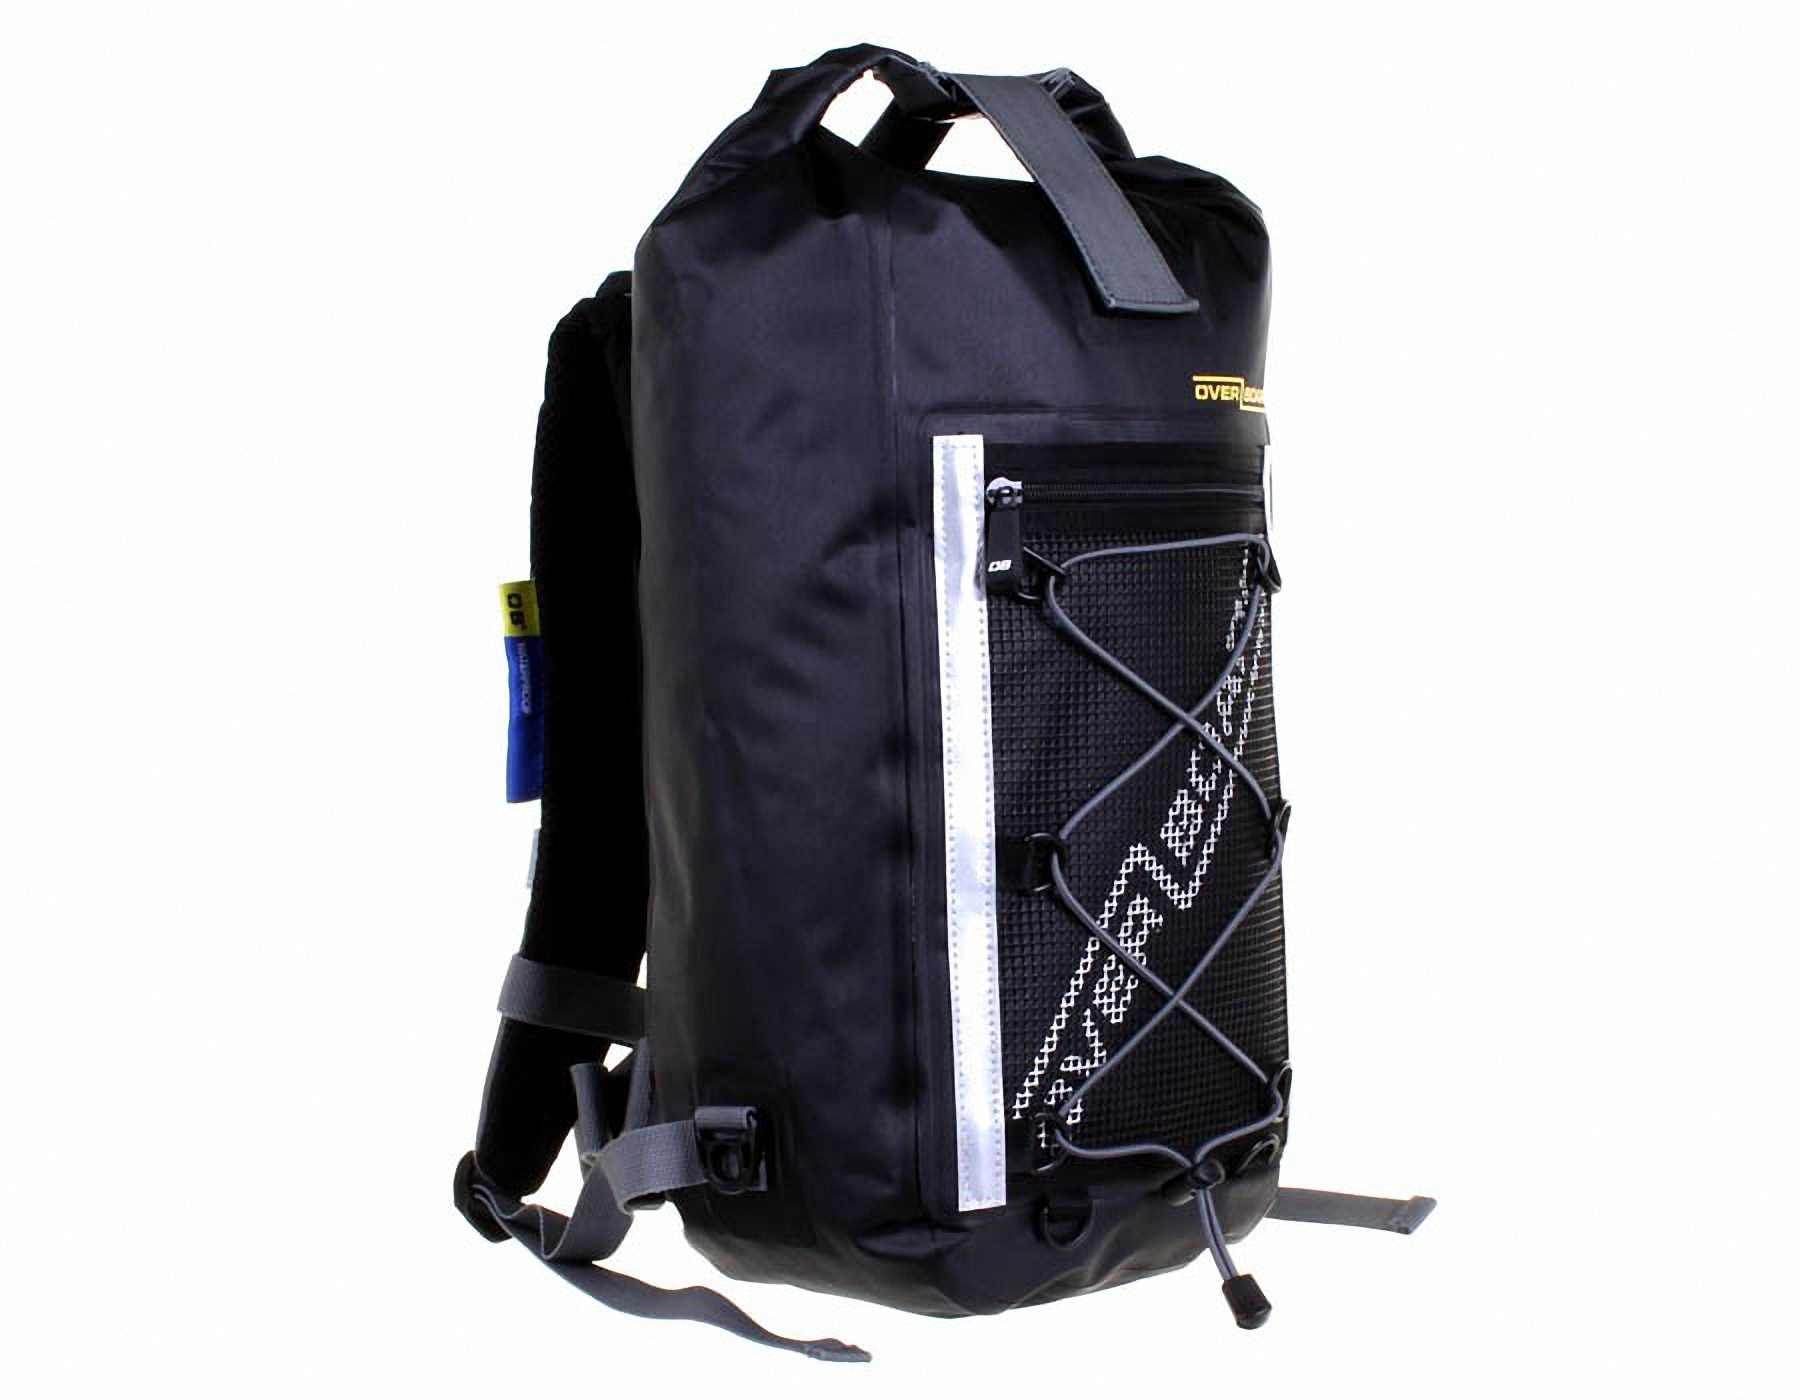 Водонепроницаемый рюкзак OverBoard OB1135BLK - Ultra-light Pro-Sports Waterproof Backpack - 20L. Фото 2